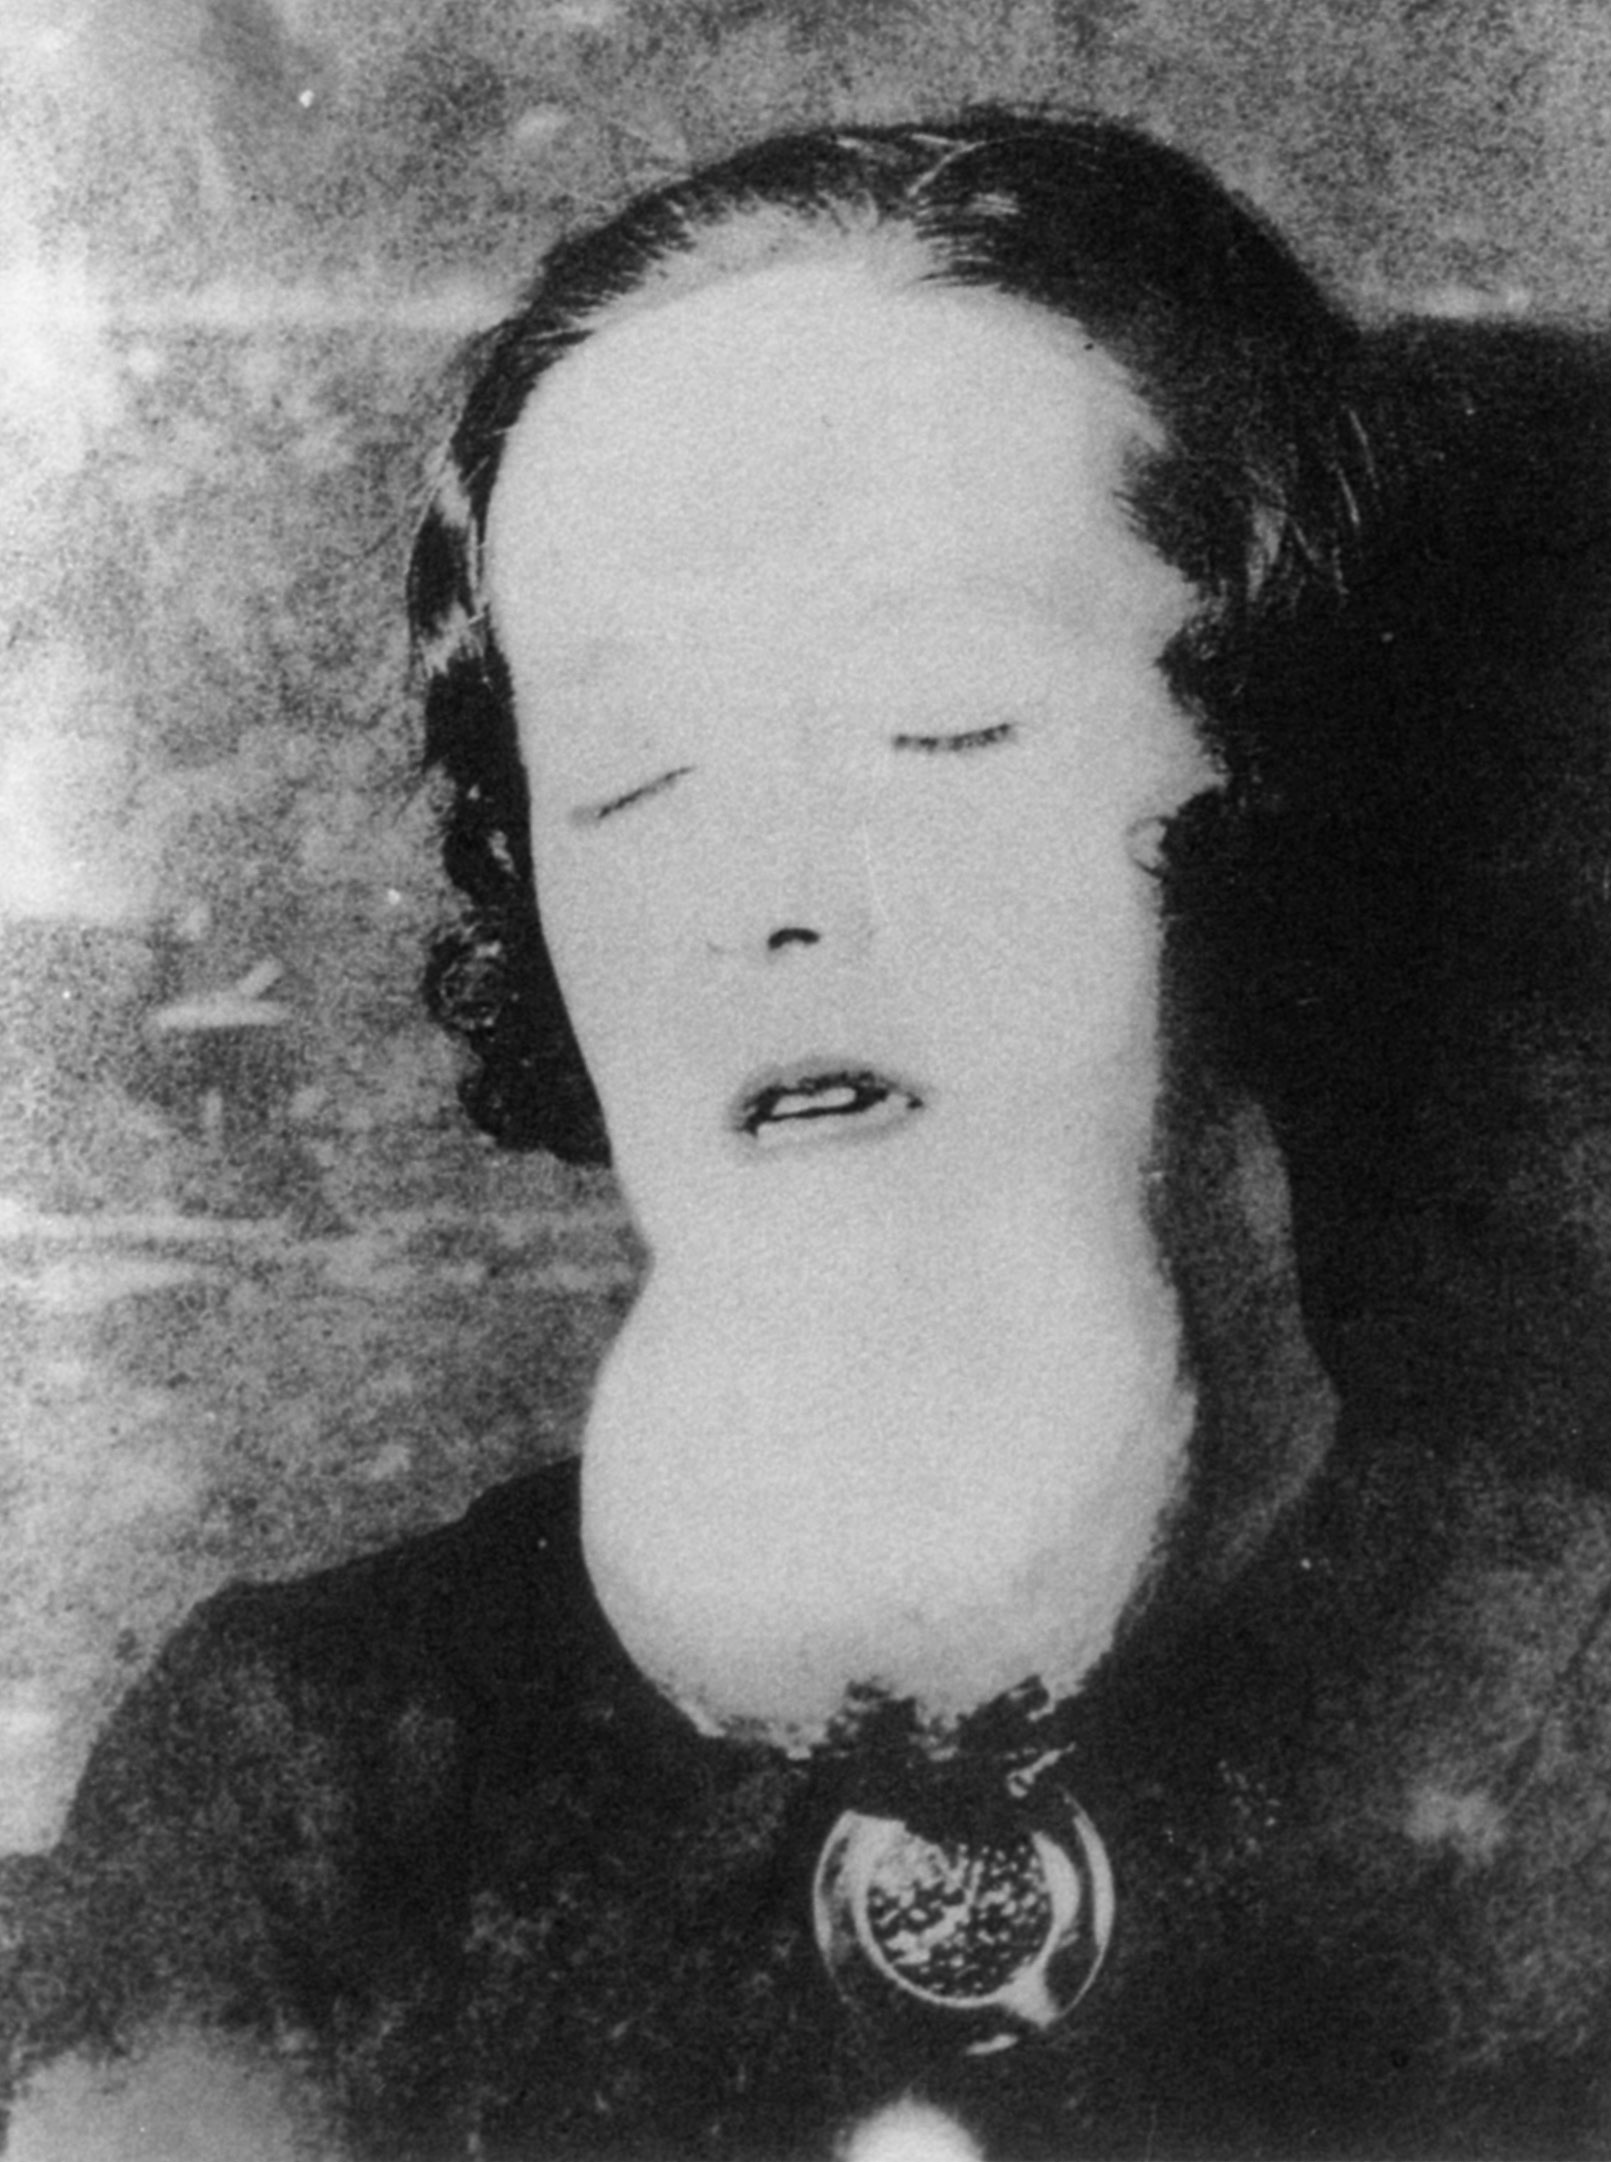 A dial-painter with a radium-induced sarcoma of the chin